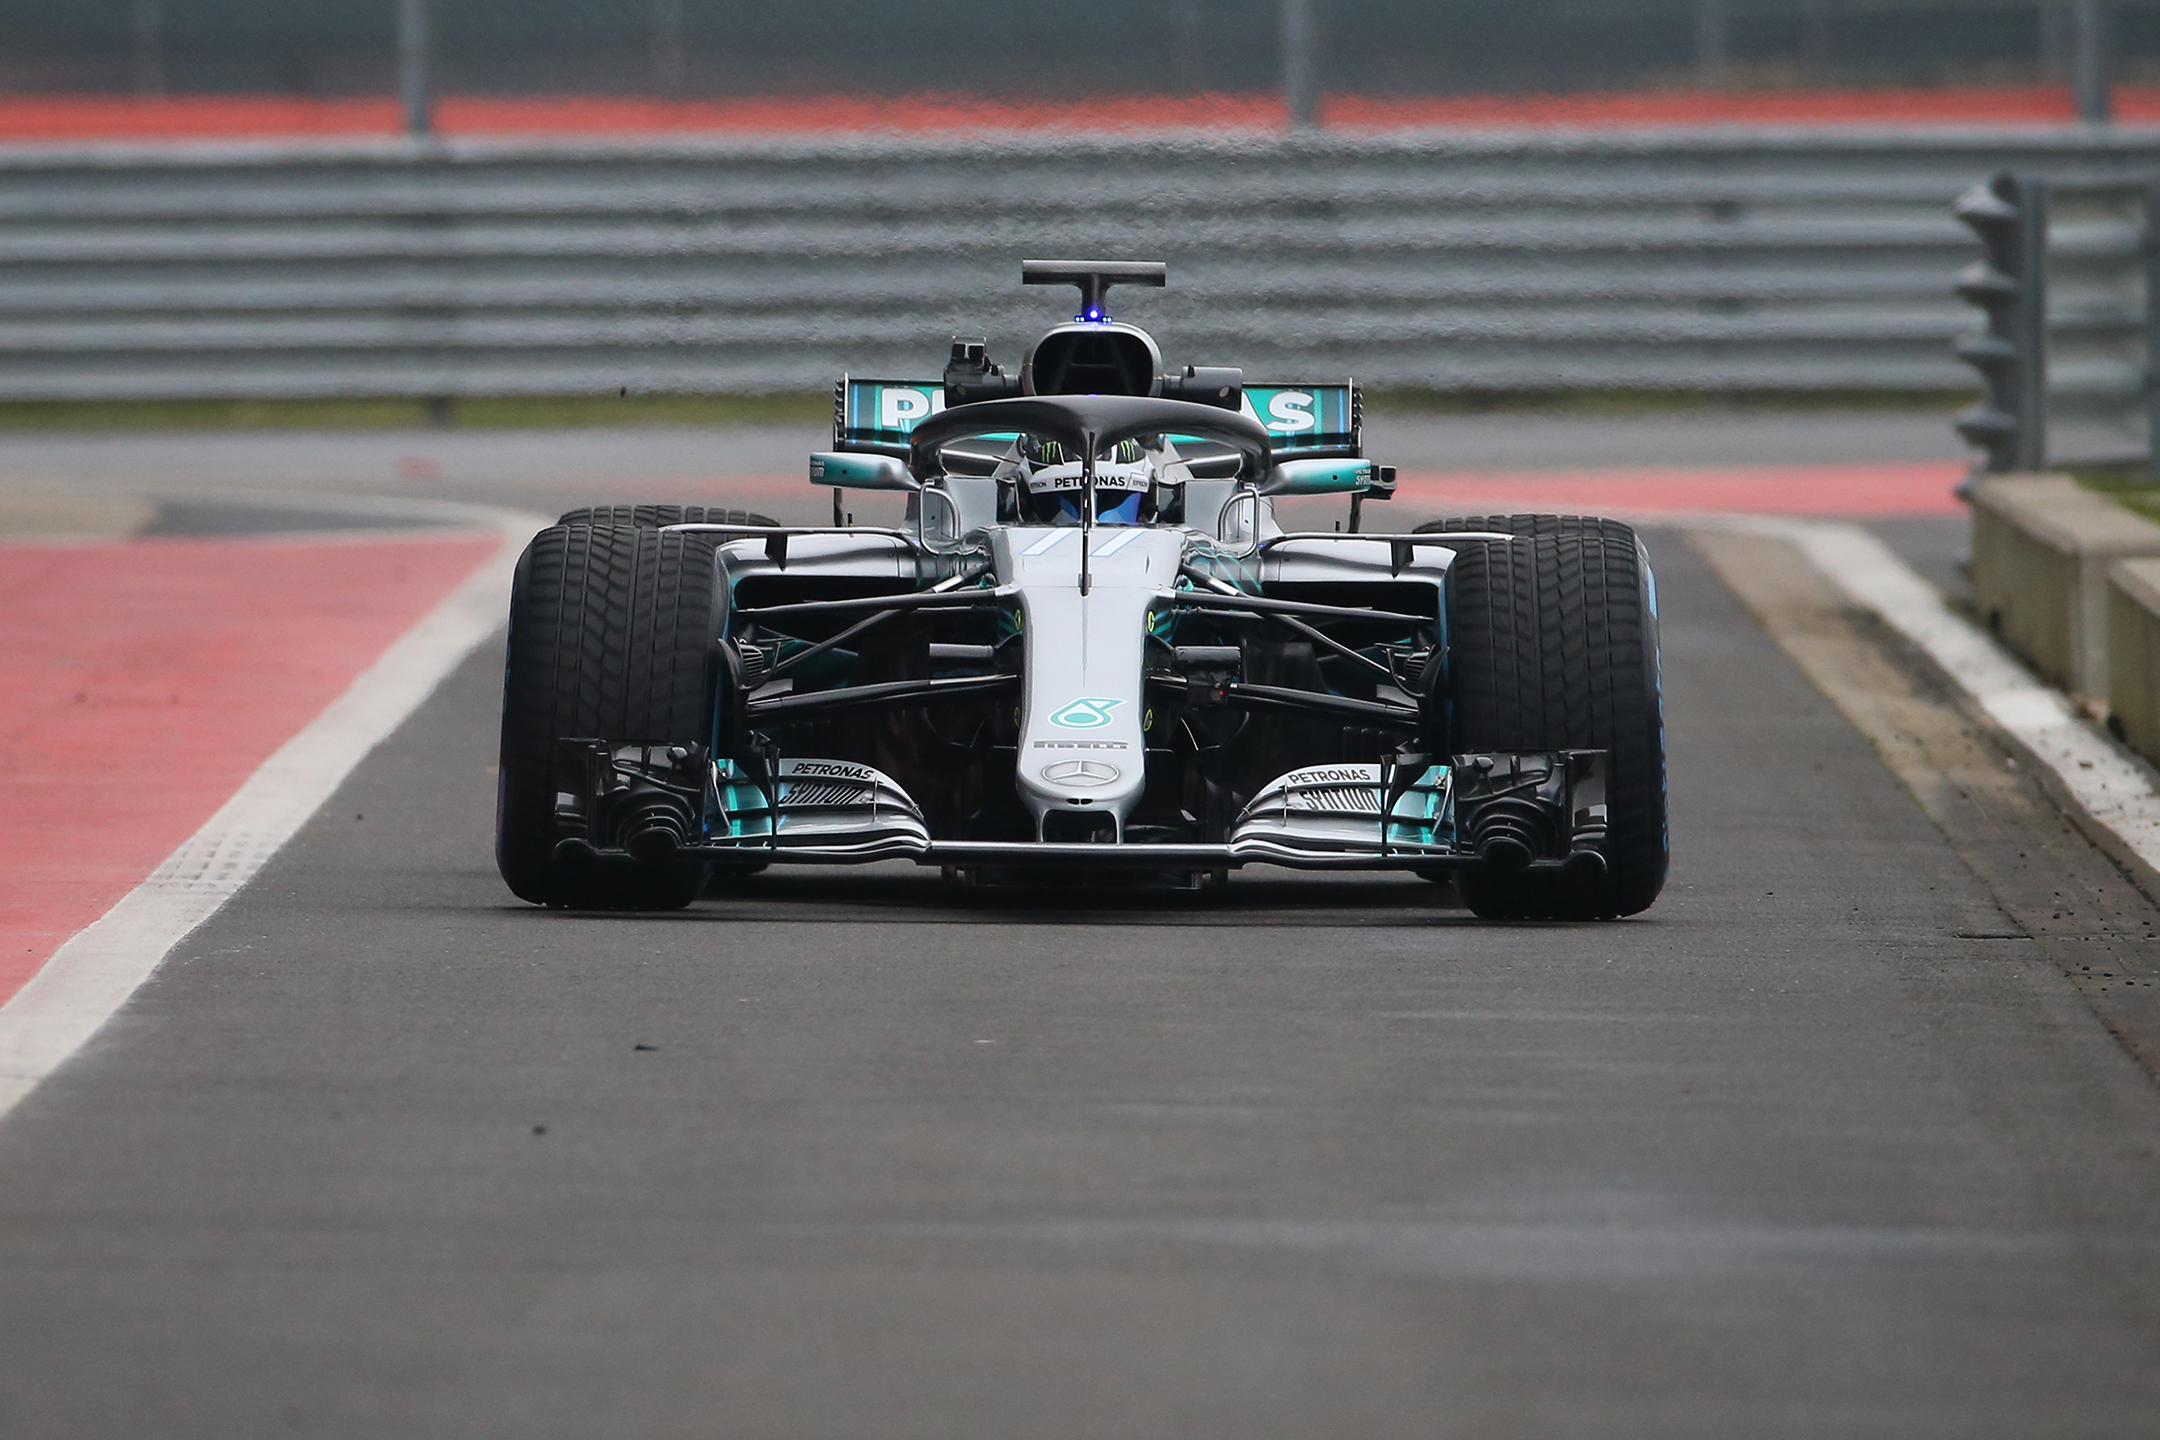 Mercedes-AMG W09 EQ Power+ - 2018 - front face - track